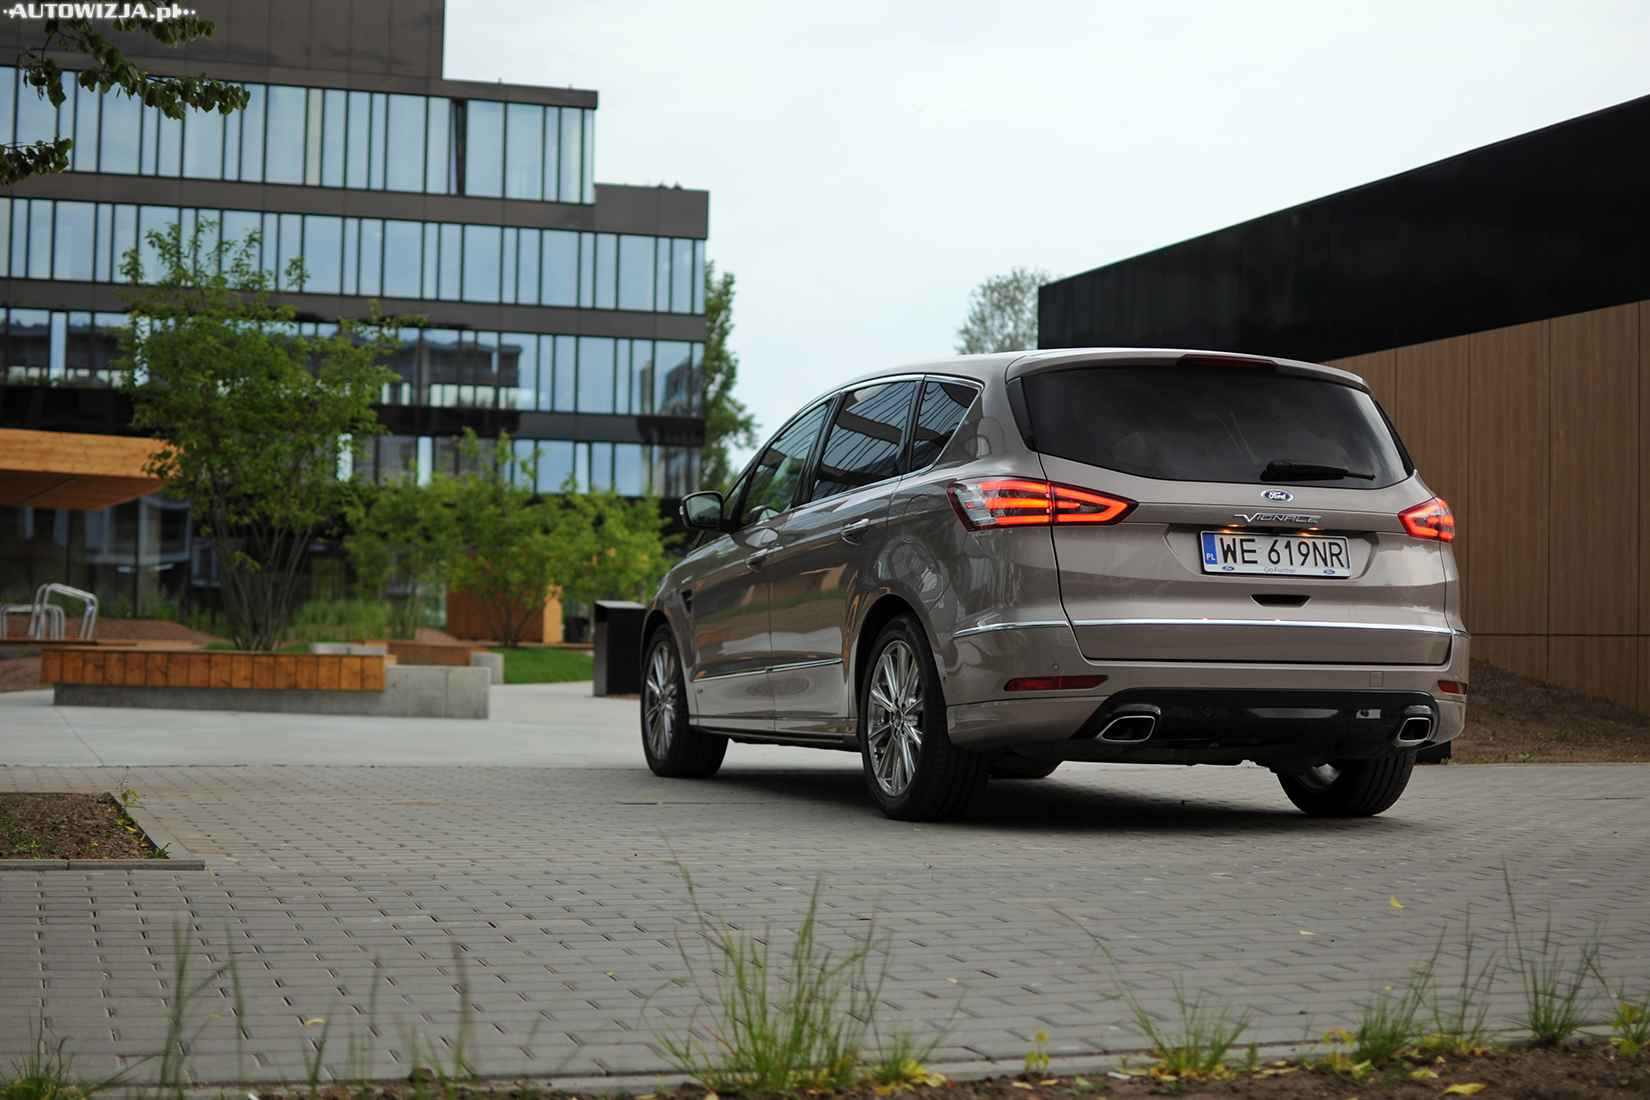 ford s max vignale 2 0 tdci 180 km awd test autowizja. Black Bedroom Furniture Sets. Home Design Ideas